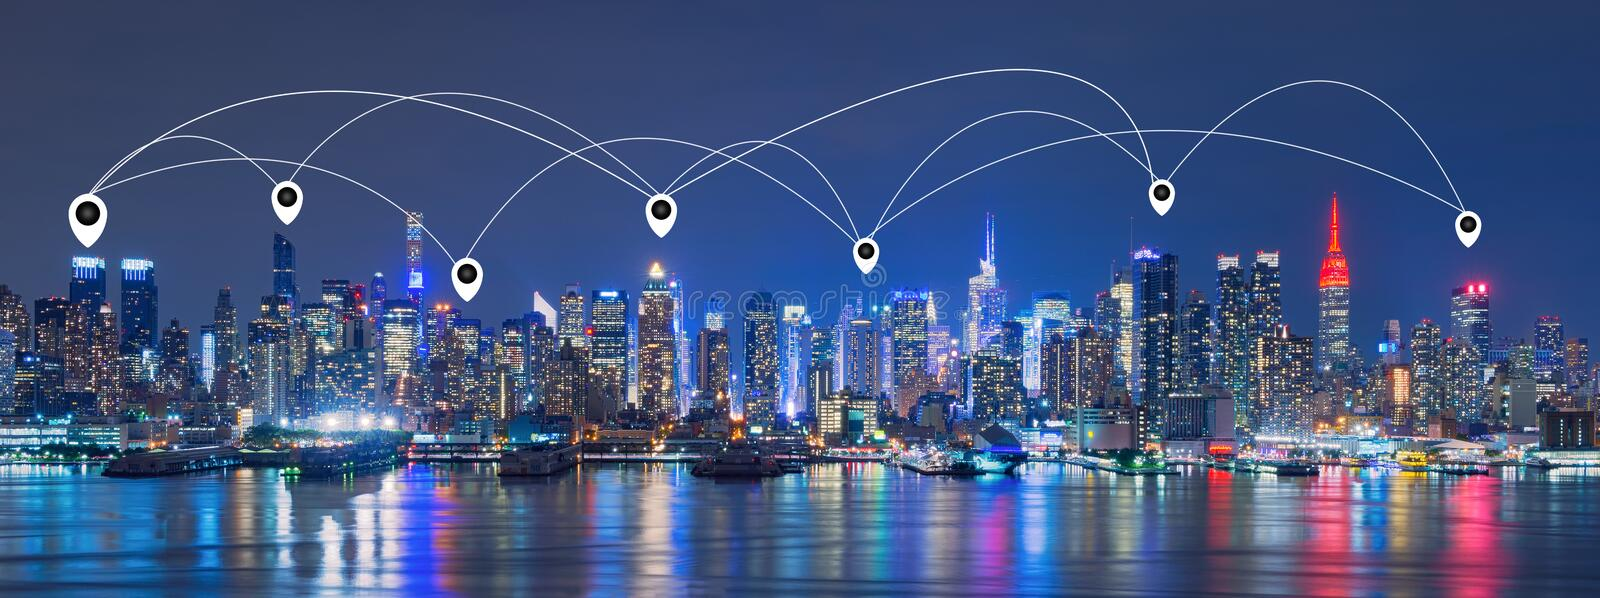 Map Pin Network And Connection Technology Concept Of Skyline Of